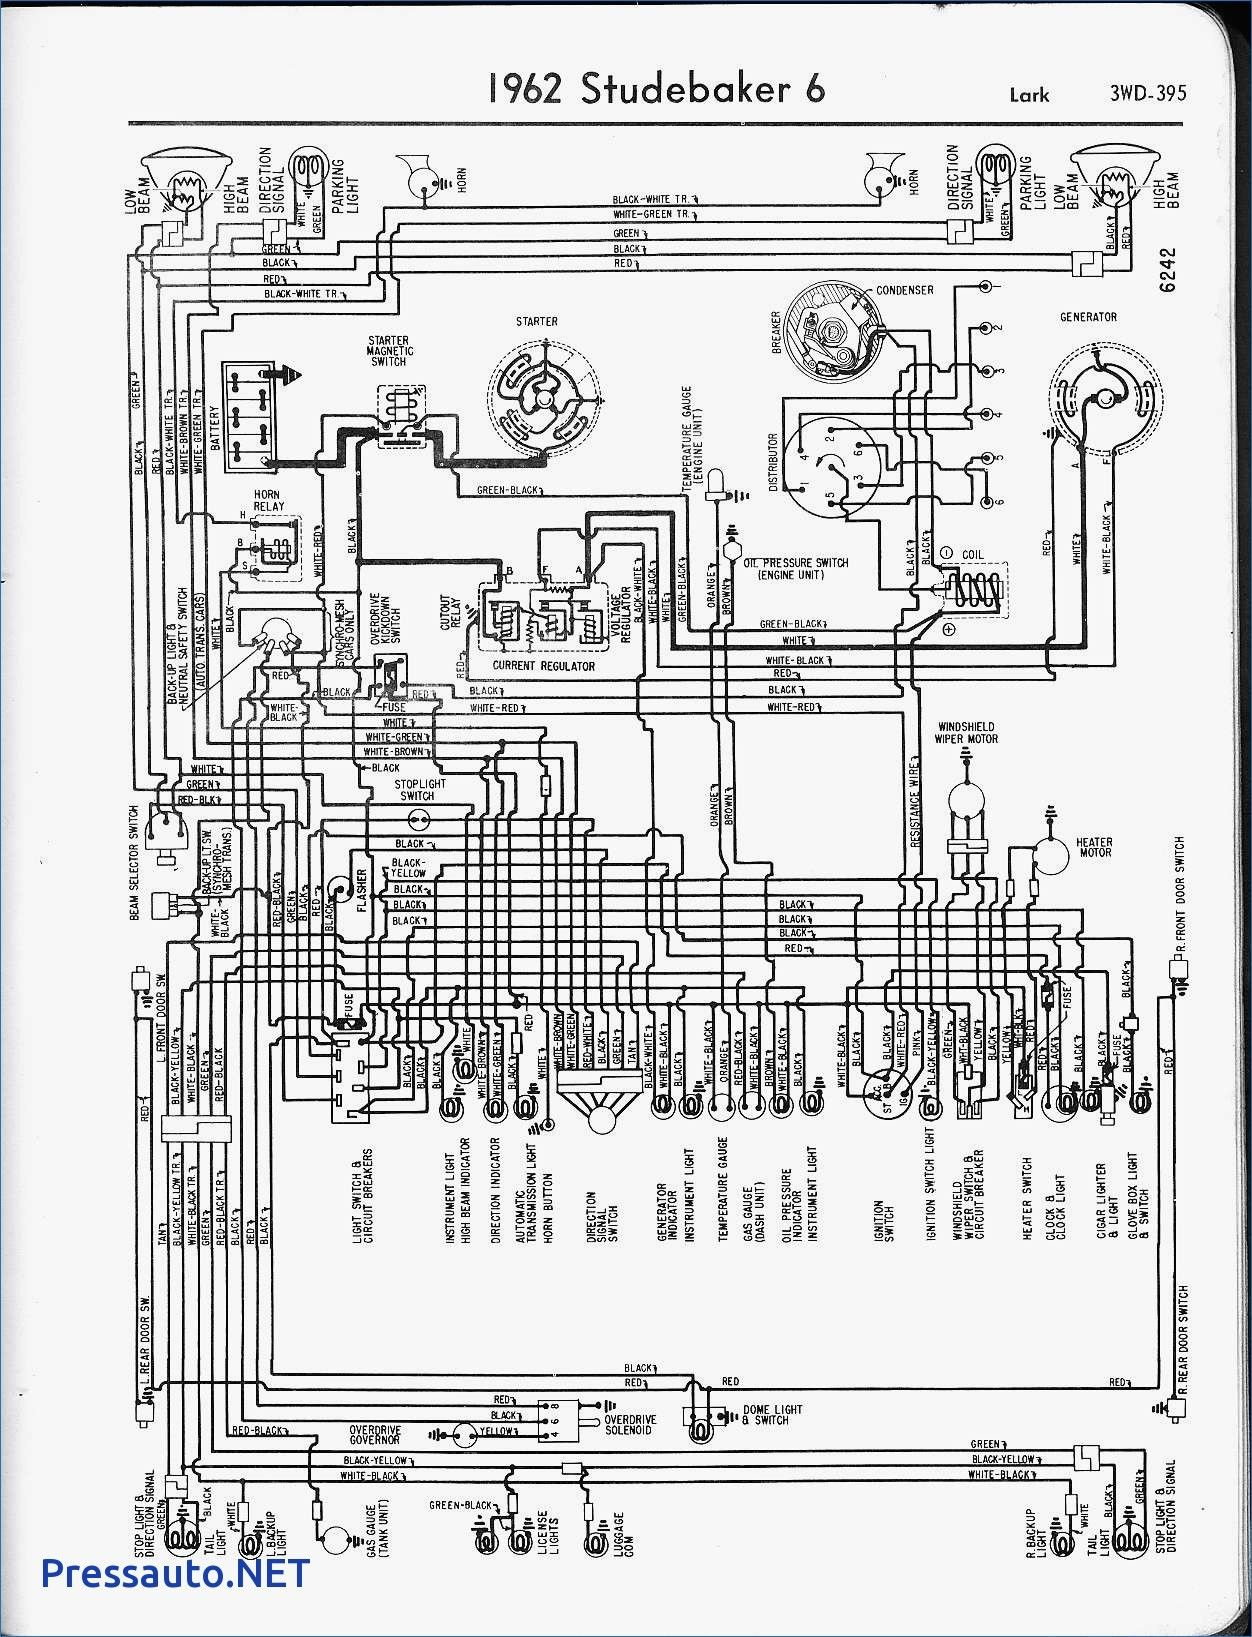 Inspirational Wiring Diagram Parrot Ck3100 #diagrams #